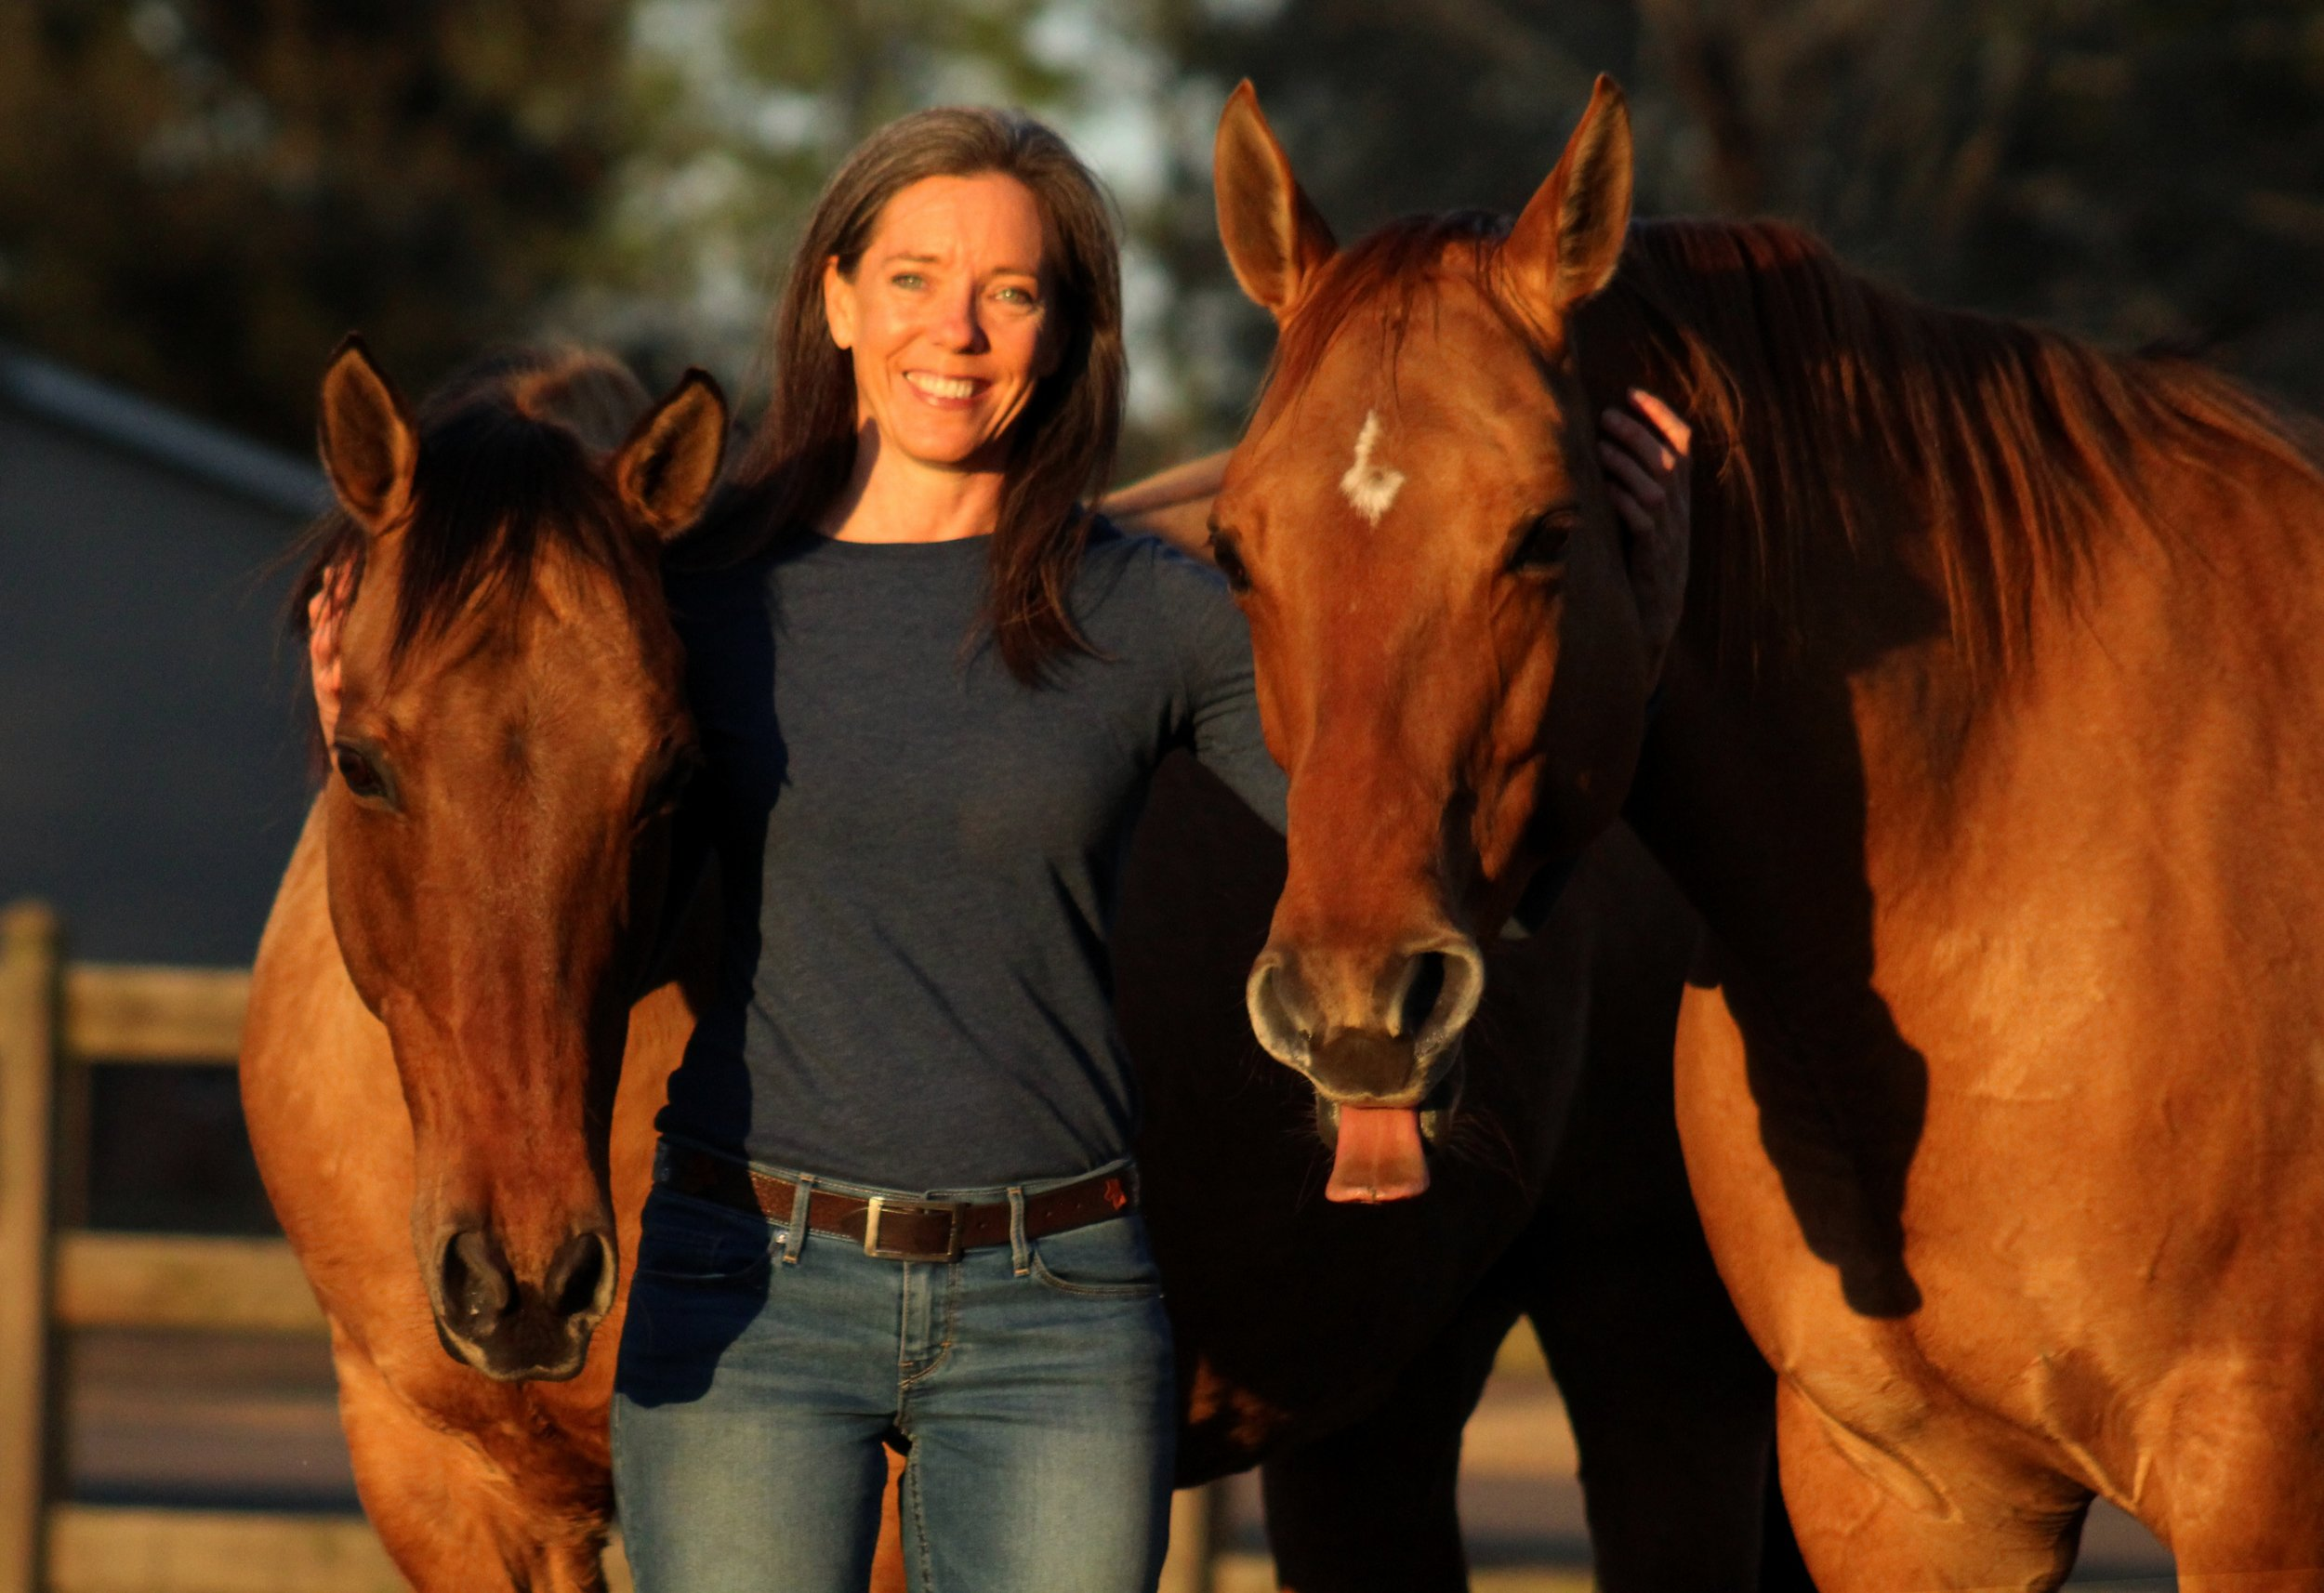 kim-halin-undridled-horse-personal-coaching-therapy-workshop-living-high-vibe-insiprational-video